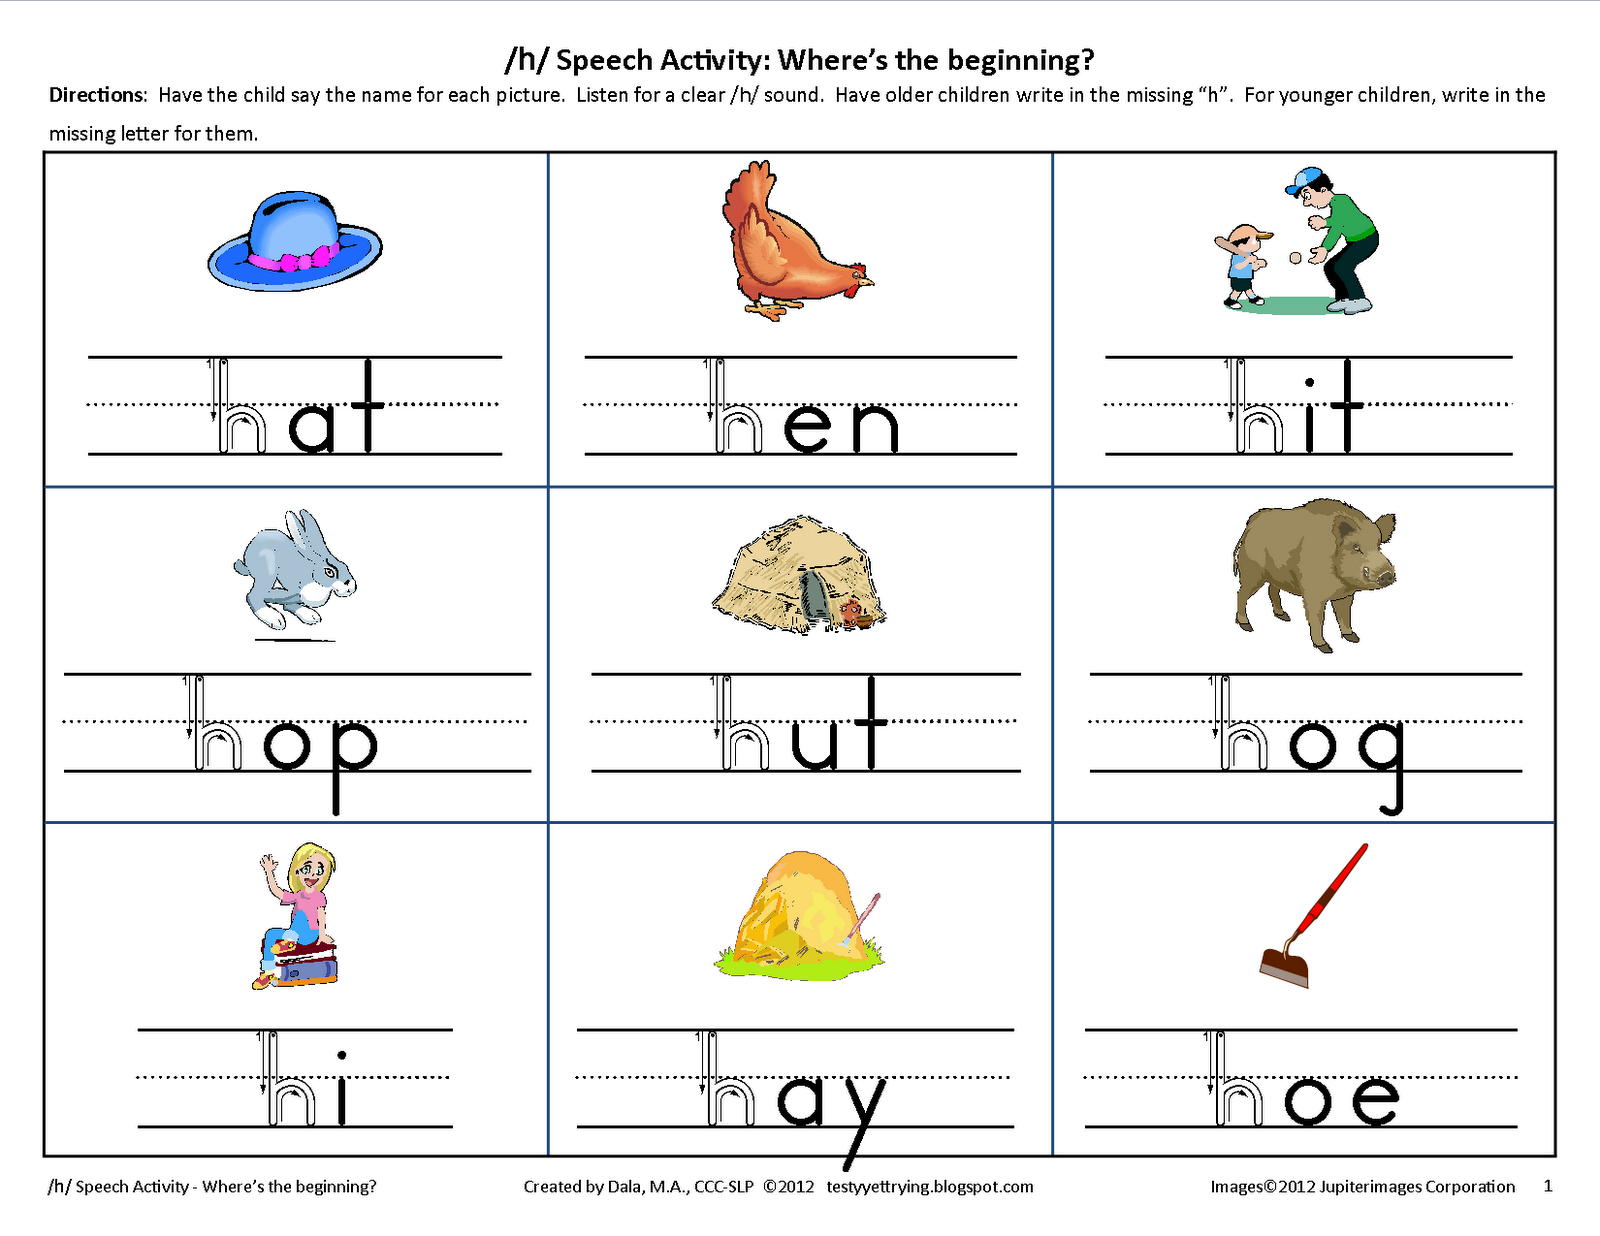 Weirdmailus  Unique Testy Yet Trying Initial H Speech Worksheet With Engaging Make Classroom Teachers Happy Reinforce Phonics And Handwriting And Practice Speech All At The Same Time With Captivating First Grade Blends Worksheets Also Worksheet For Ordinal Numbers In Addition Subtract Worksheets And Primary  Science Worksheets As Well As Expanding Numbers Worksheets Additionally Describing People Esl Worksheet From Testyyettryingblogspotcom With Weirdmailus  Engaging Testy Yet Trying Initial H Speech Worksheet With Captivating Make Classroom Teachers Happy Reinforce Phonics And Handwriting And Practice Speech All At The Same Time And Unique First Grade Blends Worksheets Also Worksheet For Ordinal Numbers In Addition Subtract Worksheets From Testyyettryingblogspotcom